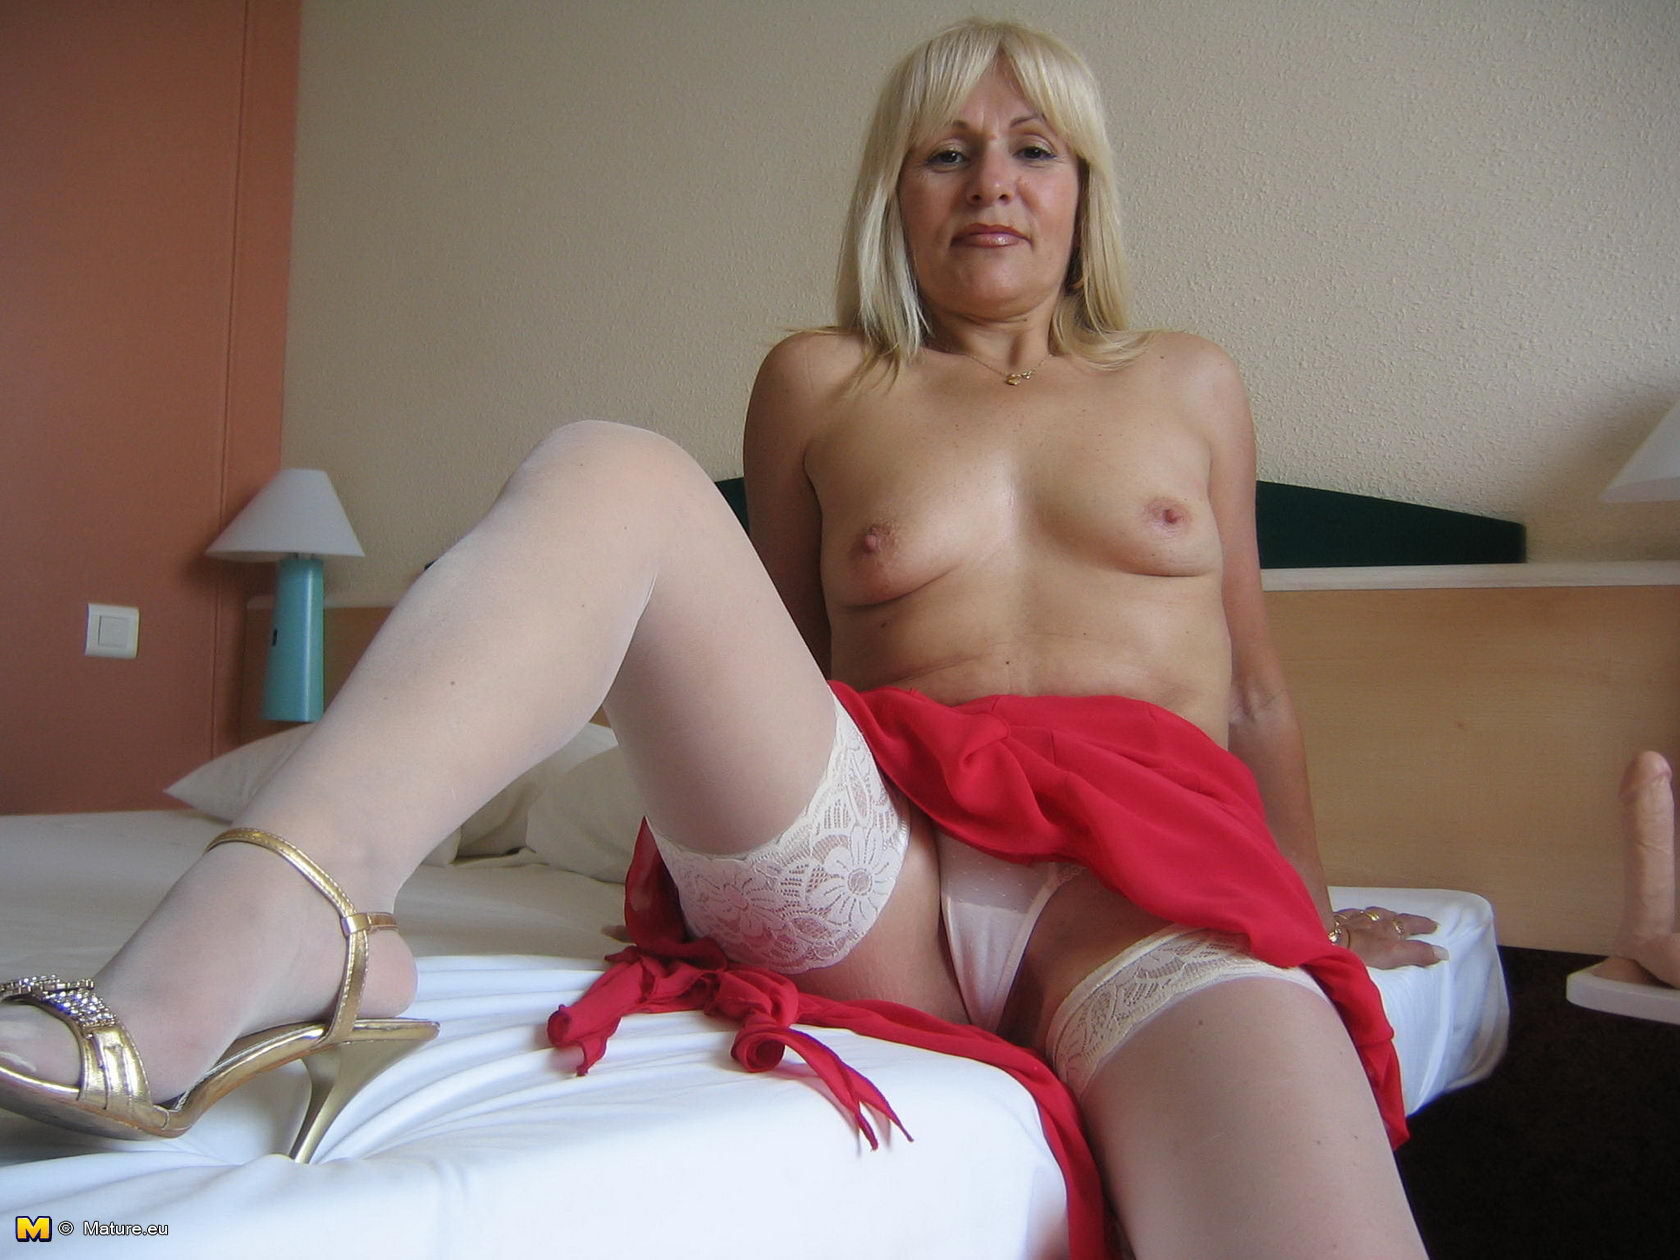 Mature free affiliates galleries custom eu http